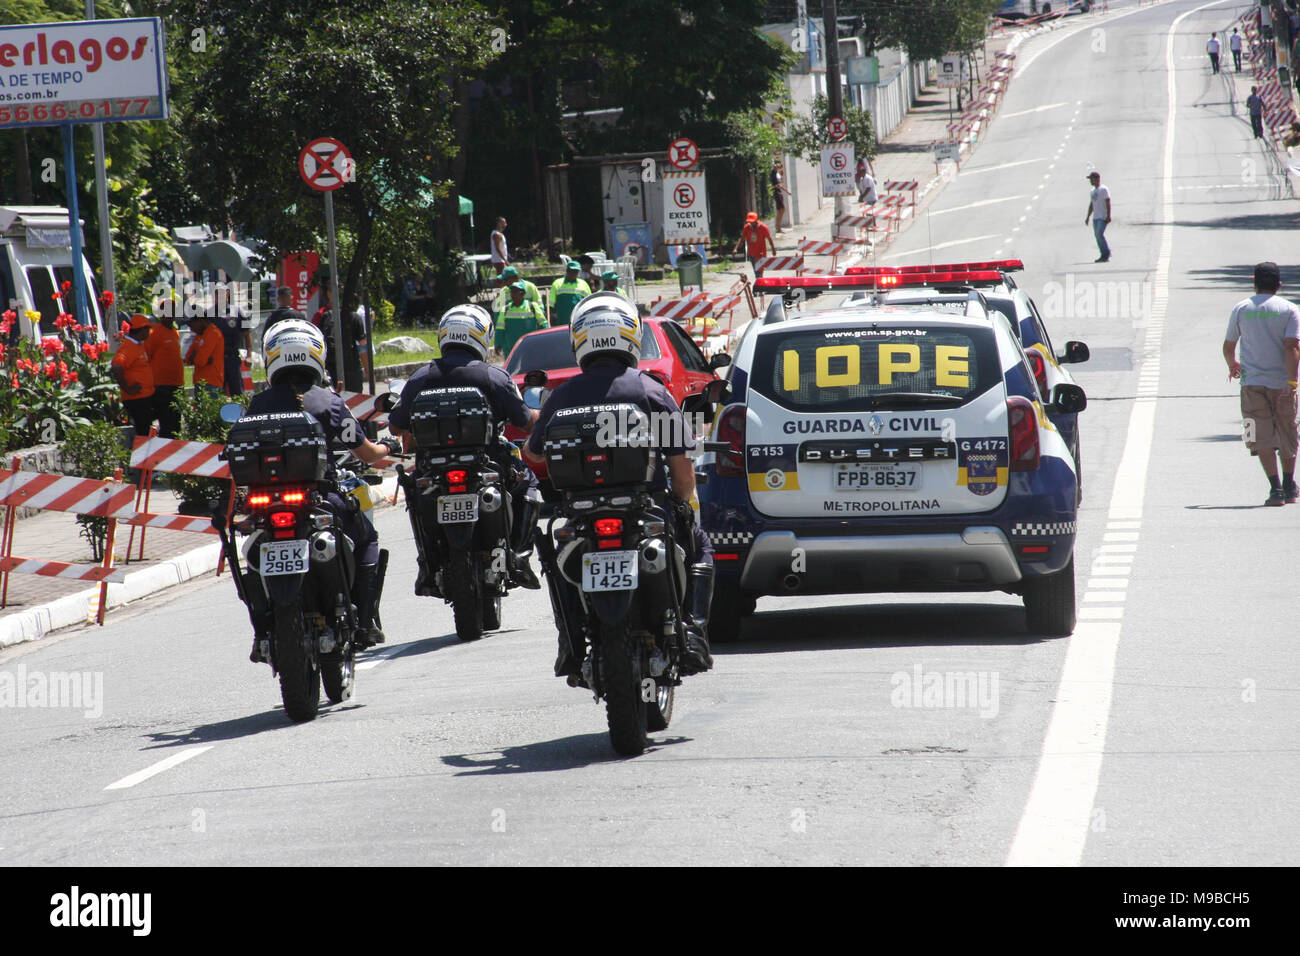 Brazil. 24th Mar, 2018. General Movement of people during the festival at Jose Carlos Pace Autodrome Interlagos. Credit: Niyi Fote/Pacific Press/Alamy Live News - Stock Image